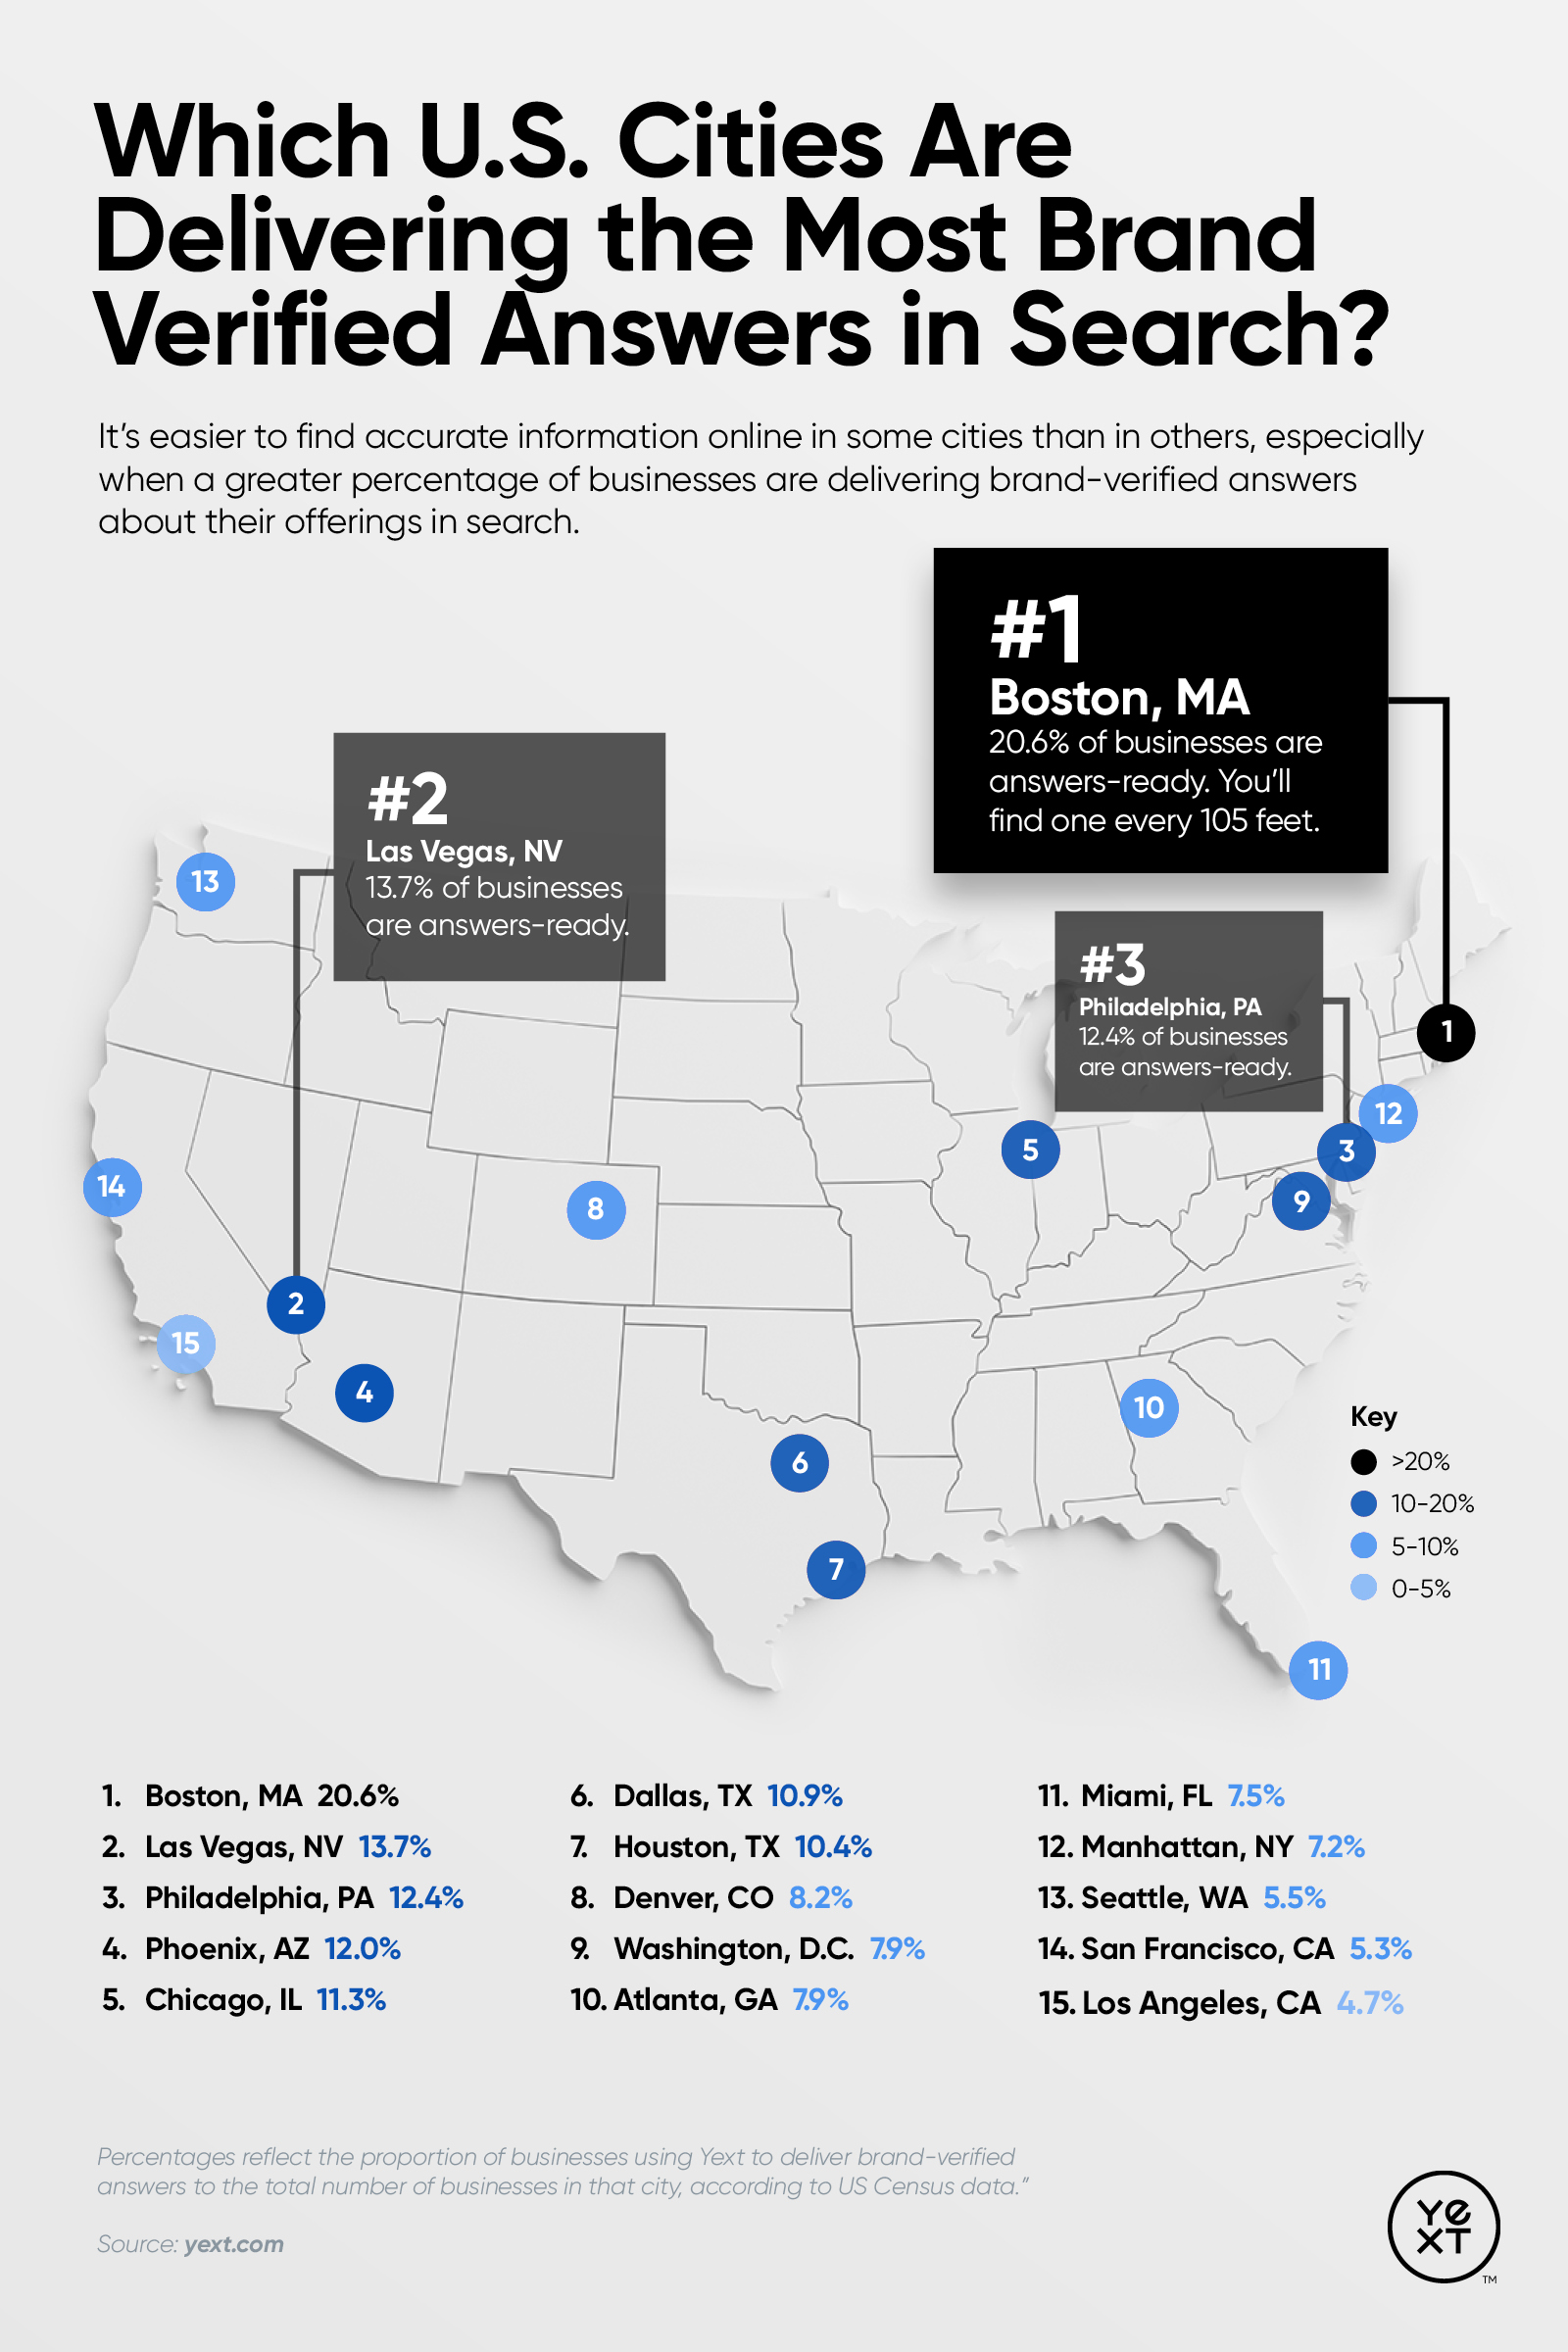 U.S. map displaying 15 cities where businesses are delivering brand verified answers online.